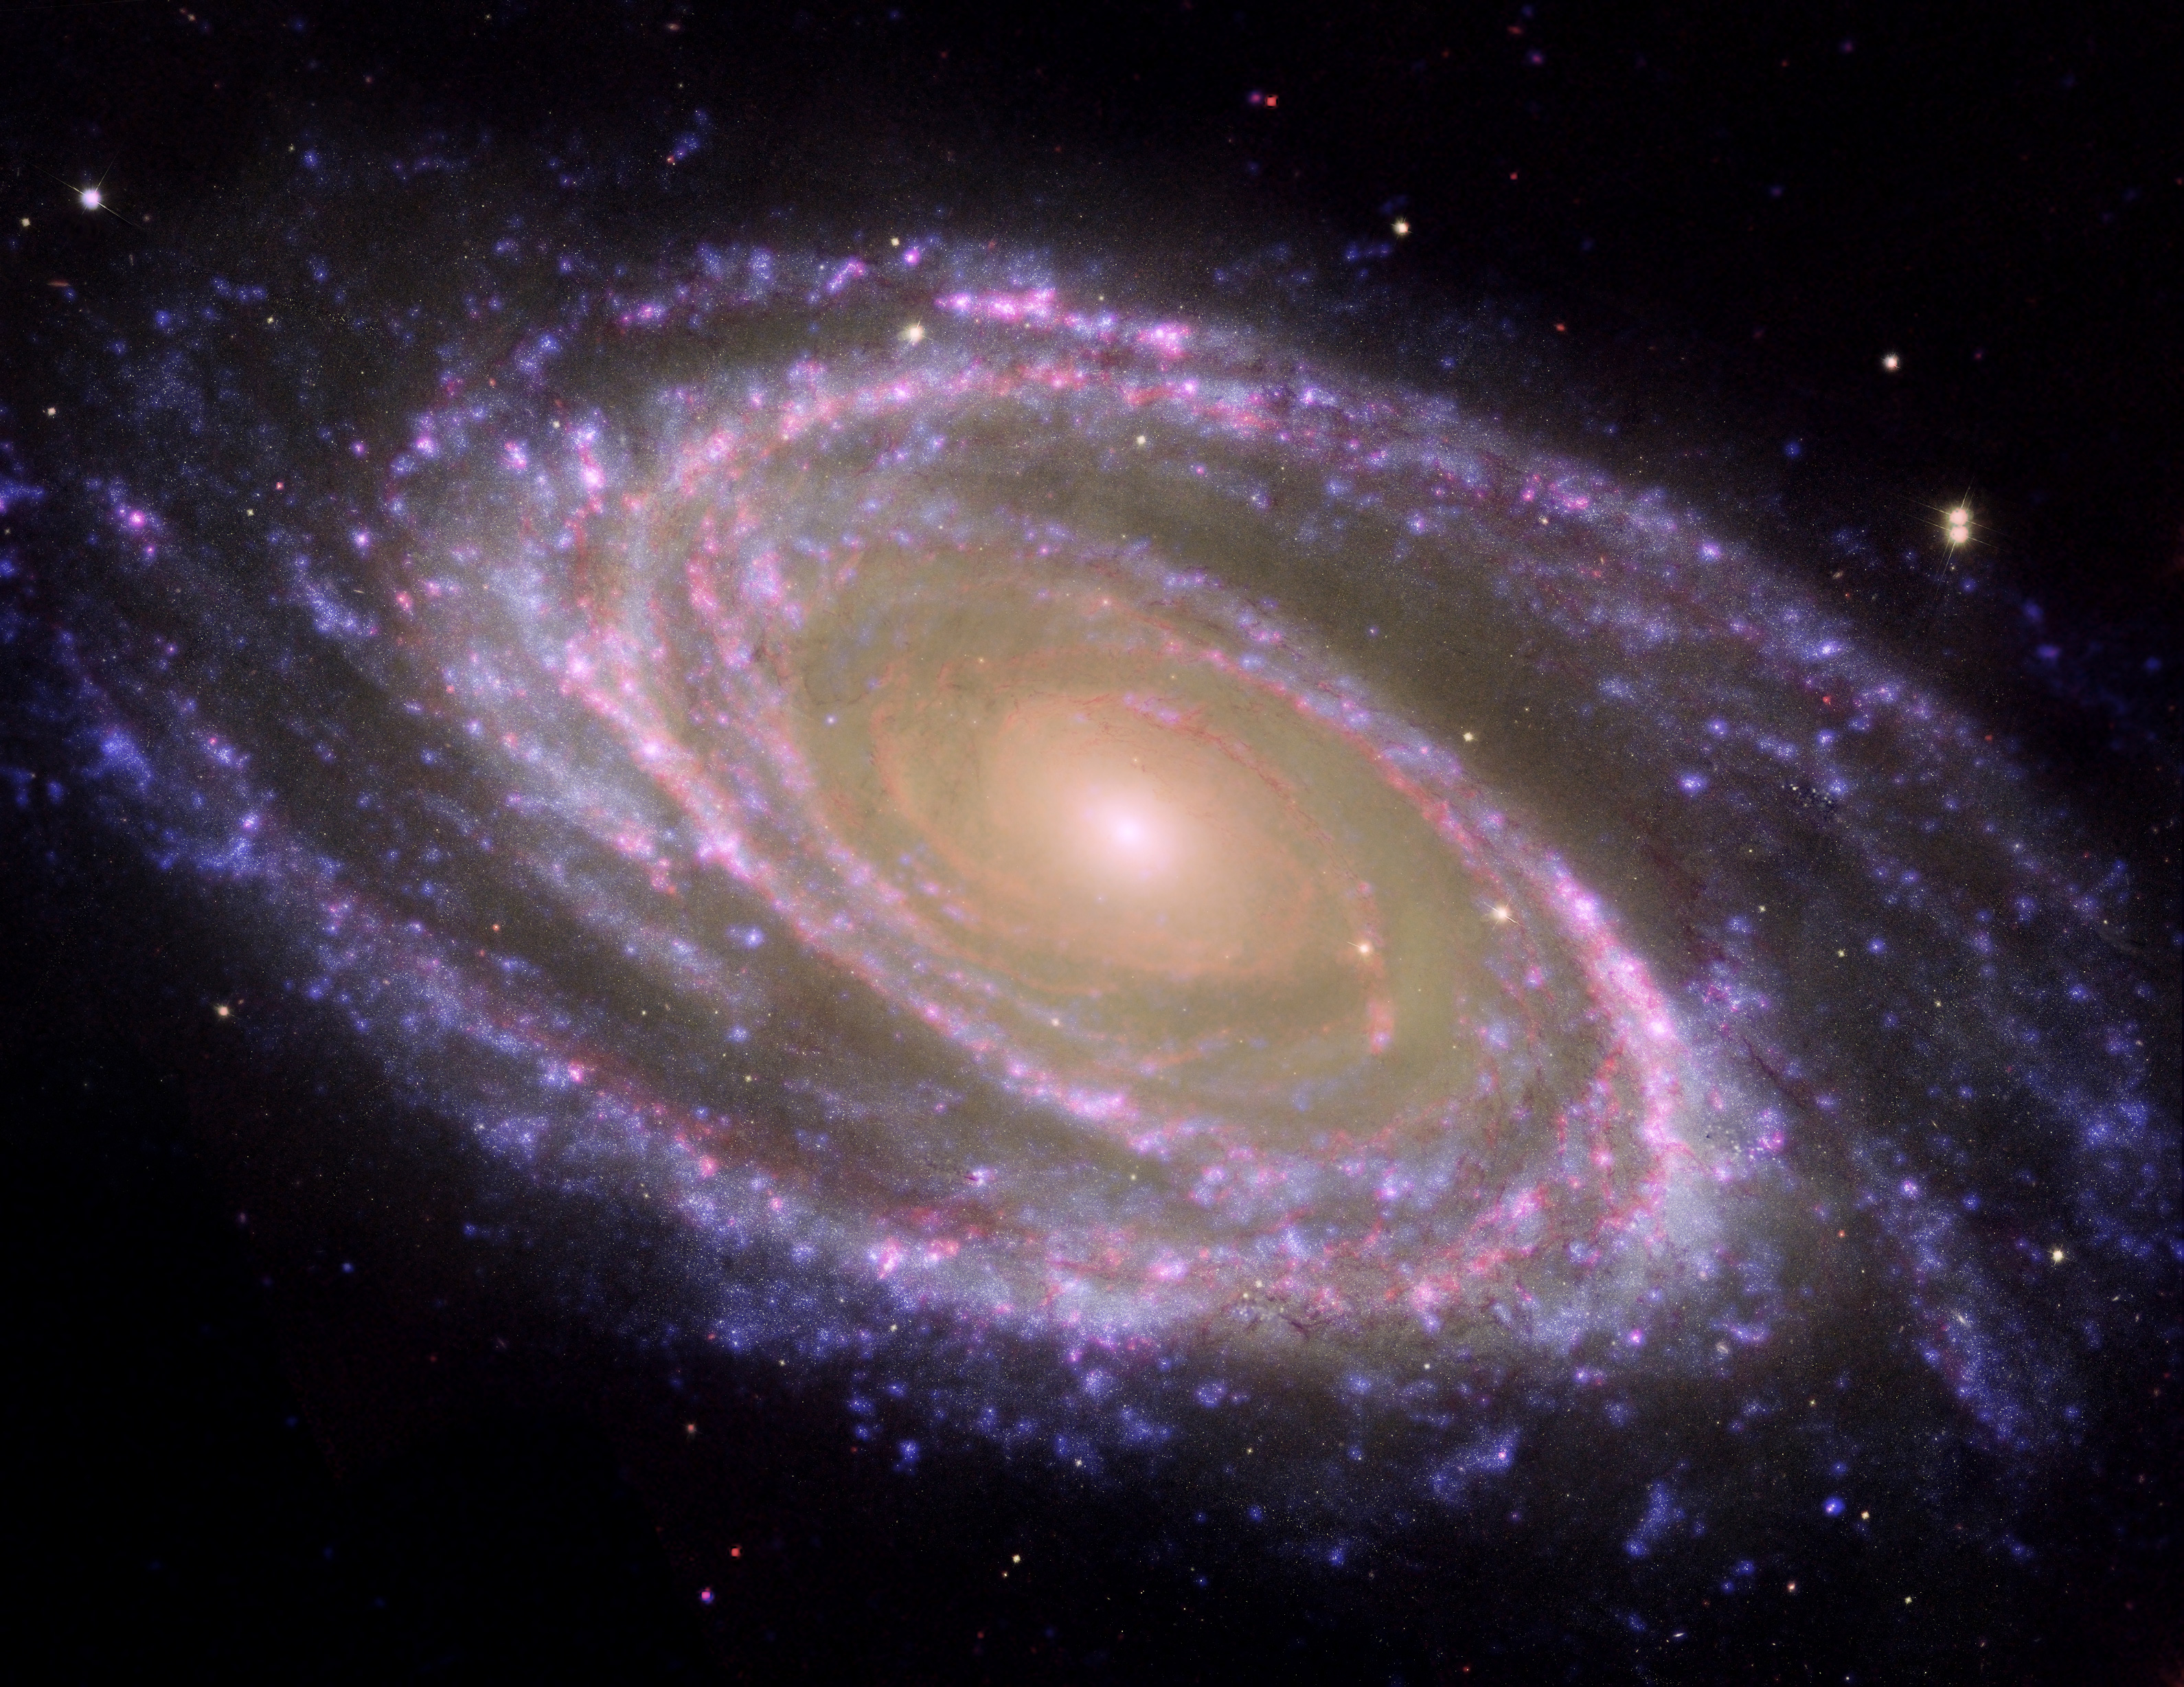 NASA - M81 Galaxy is Pretty in Pink